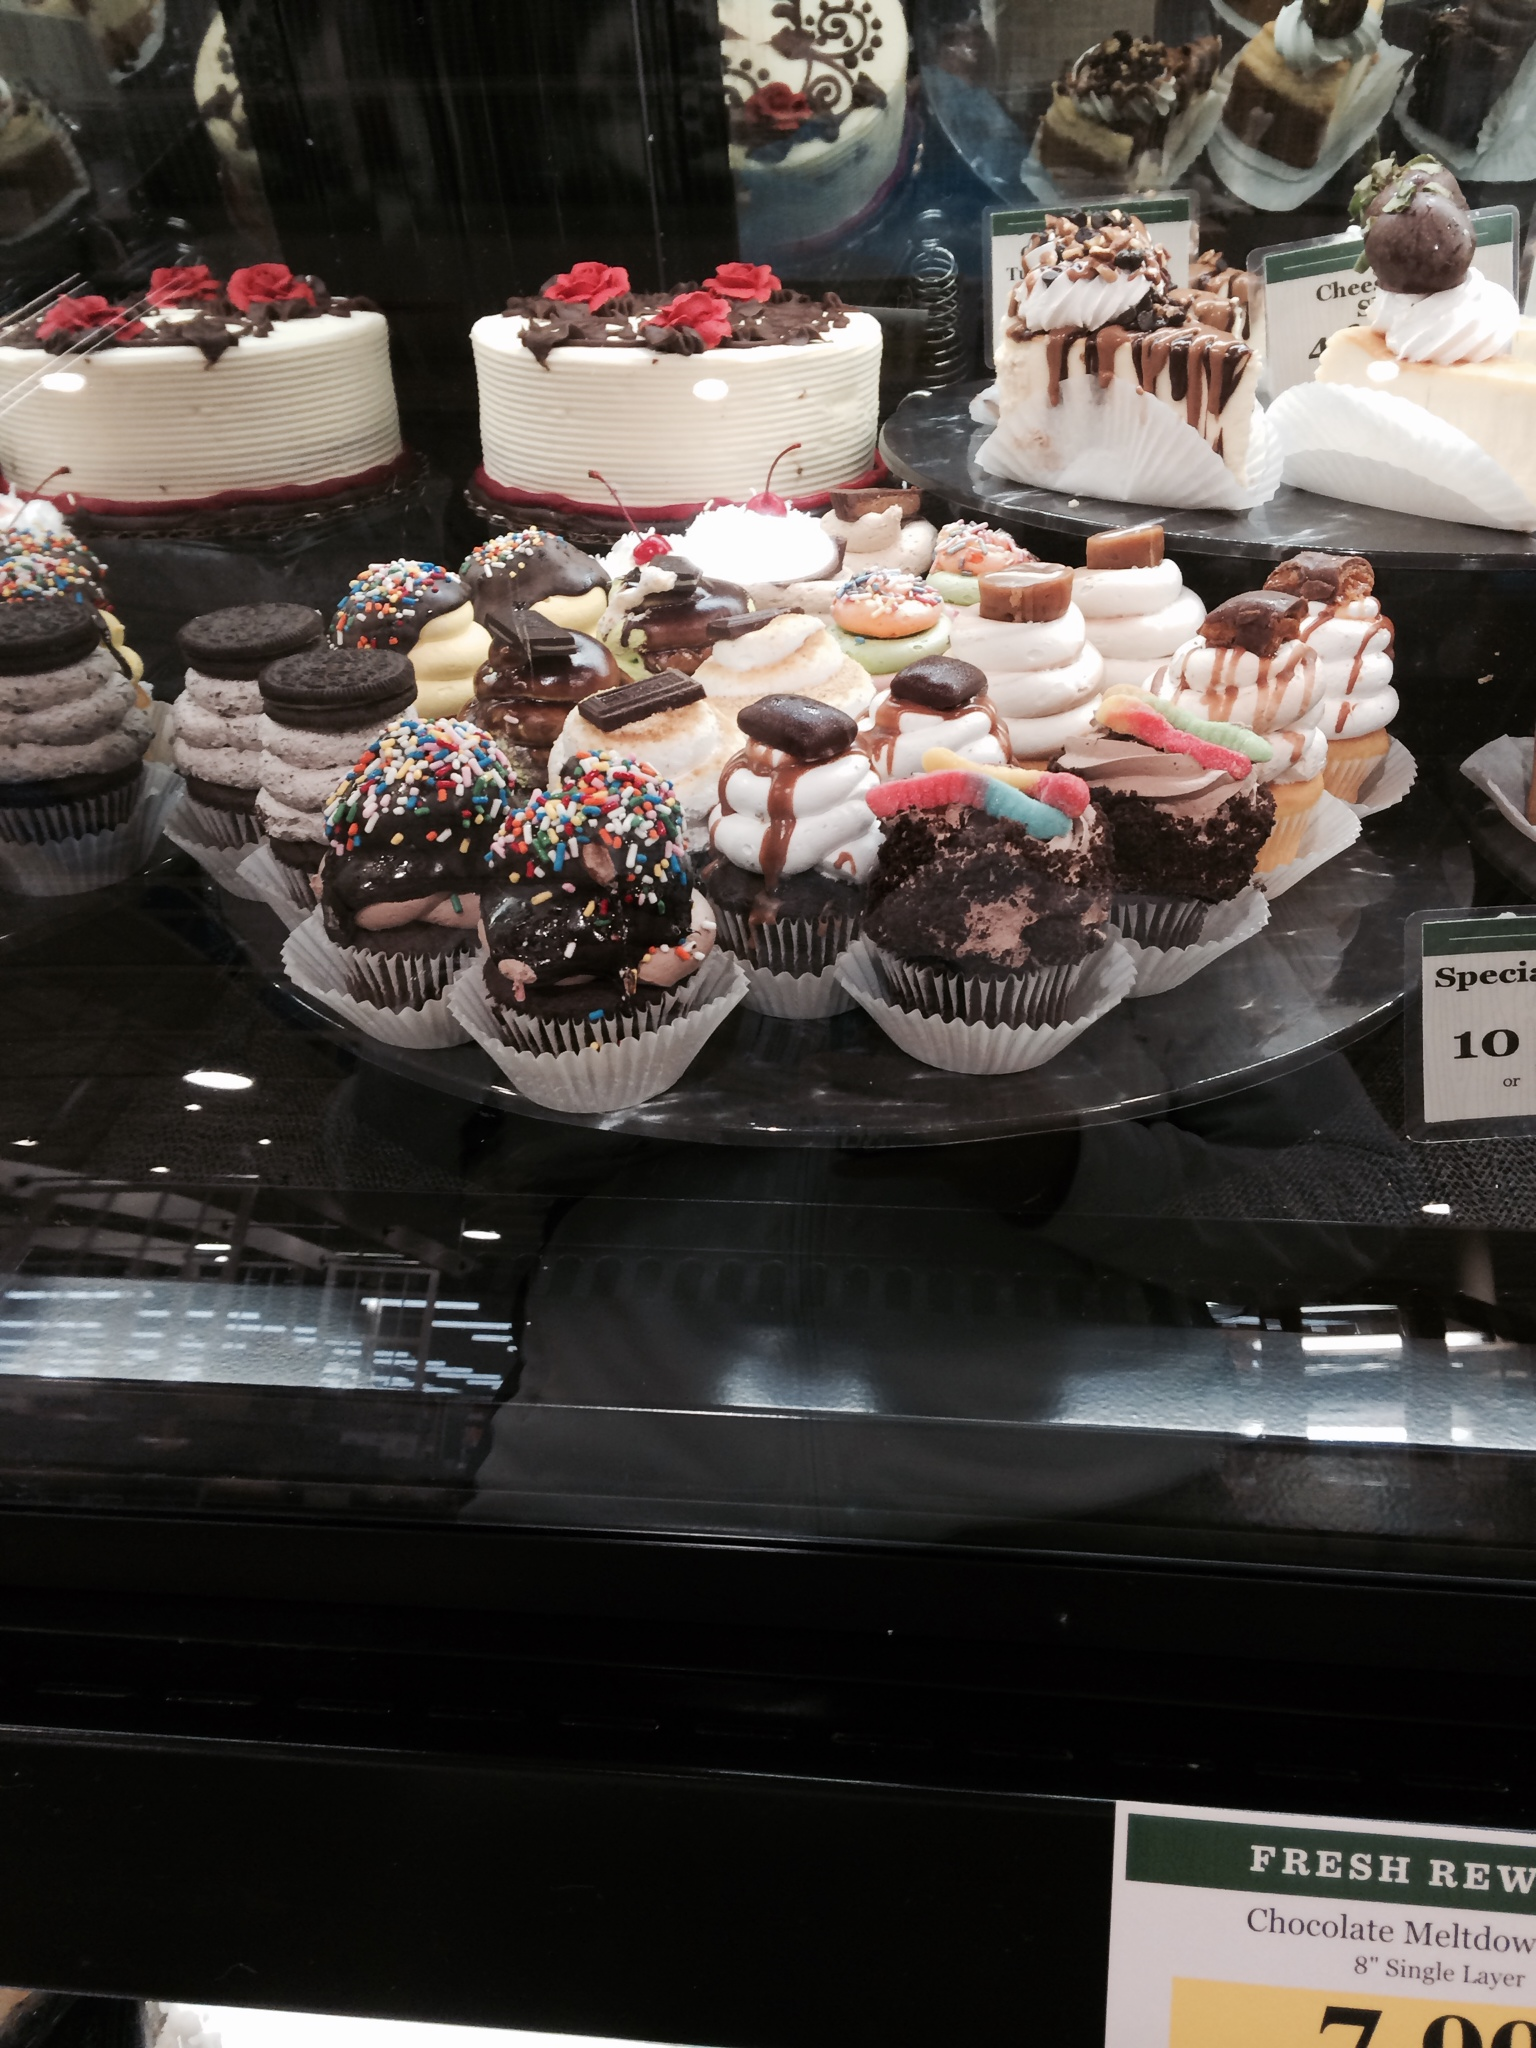 These are cupcakes from when I went to Loew's this evening. I admit, cupcakes are different now compared to when i was in grade school.